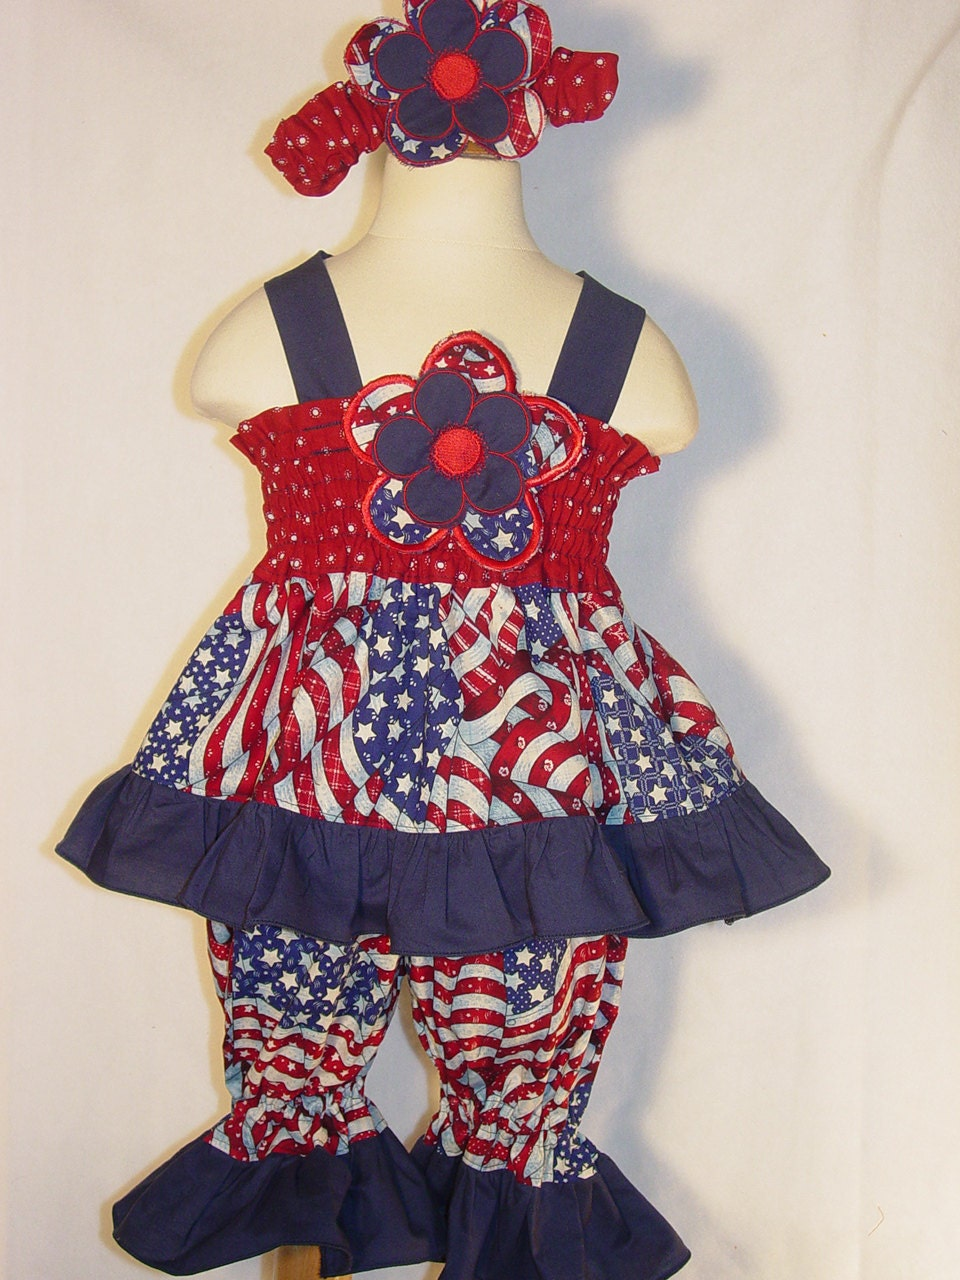 Find great deals on eBay for girls 4th of july outfits. Shop with confidence.